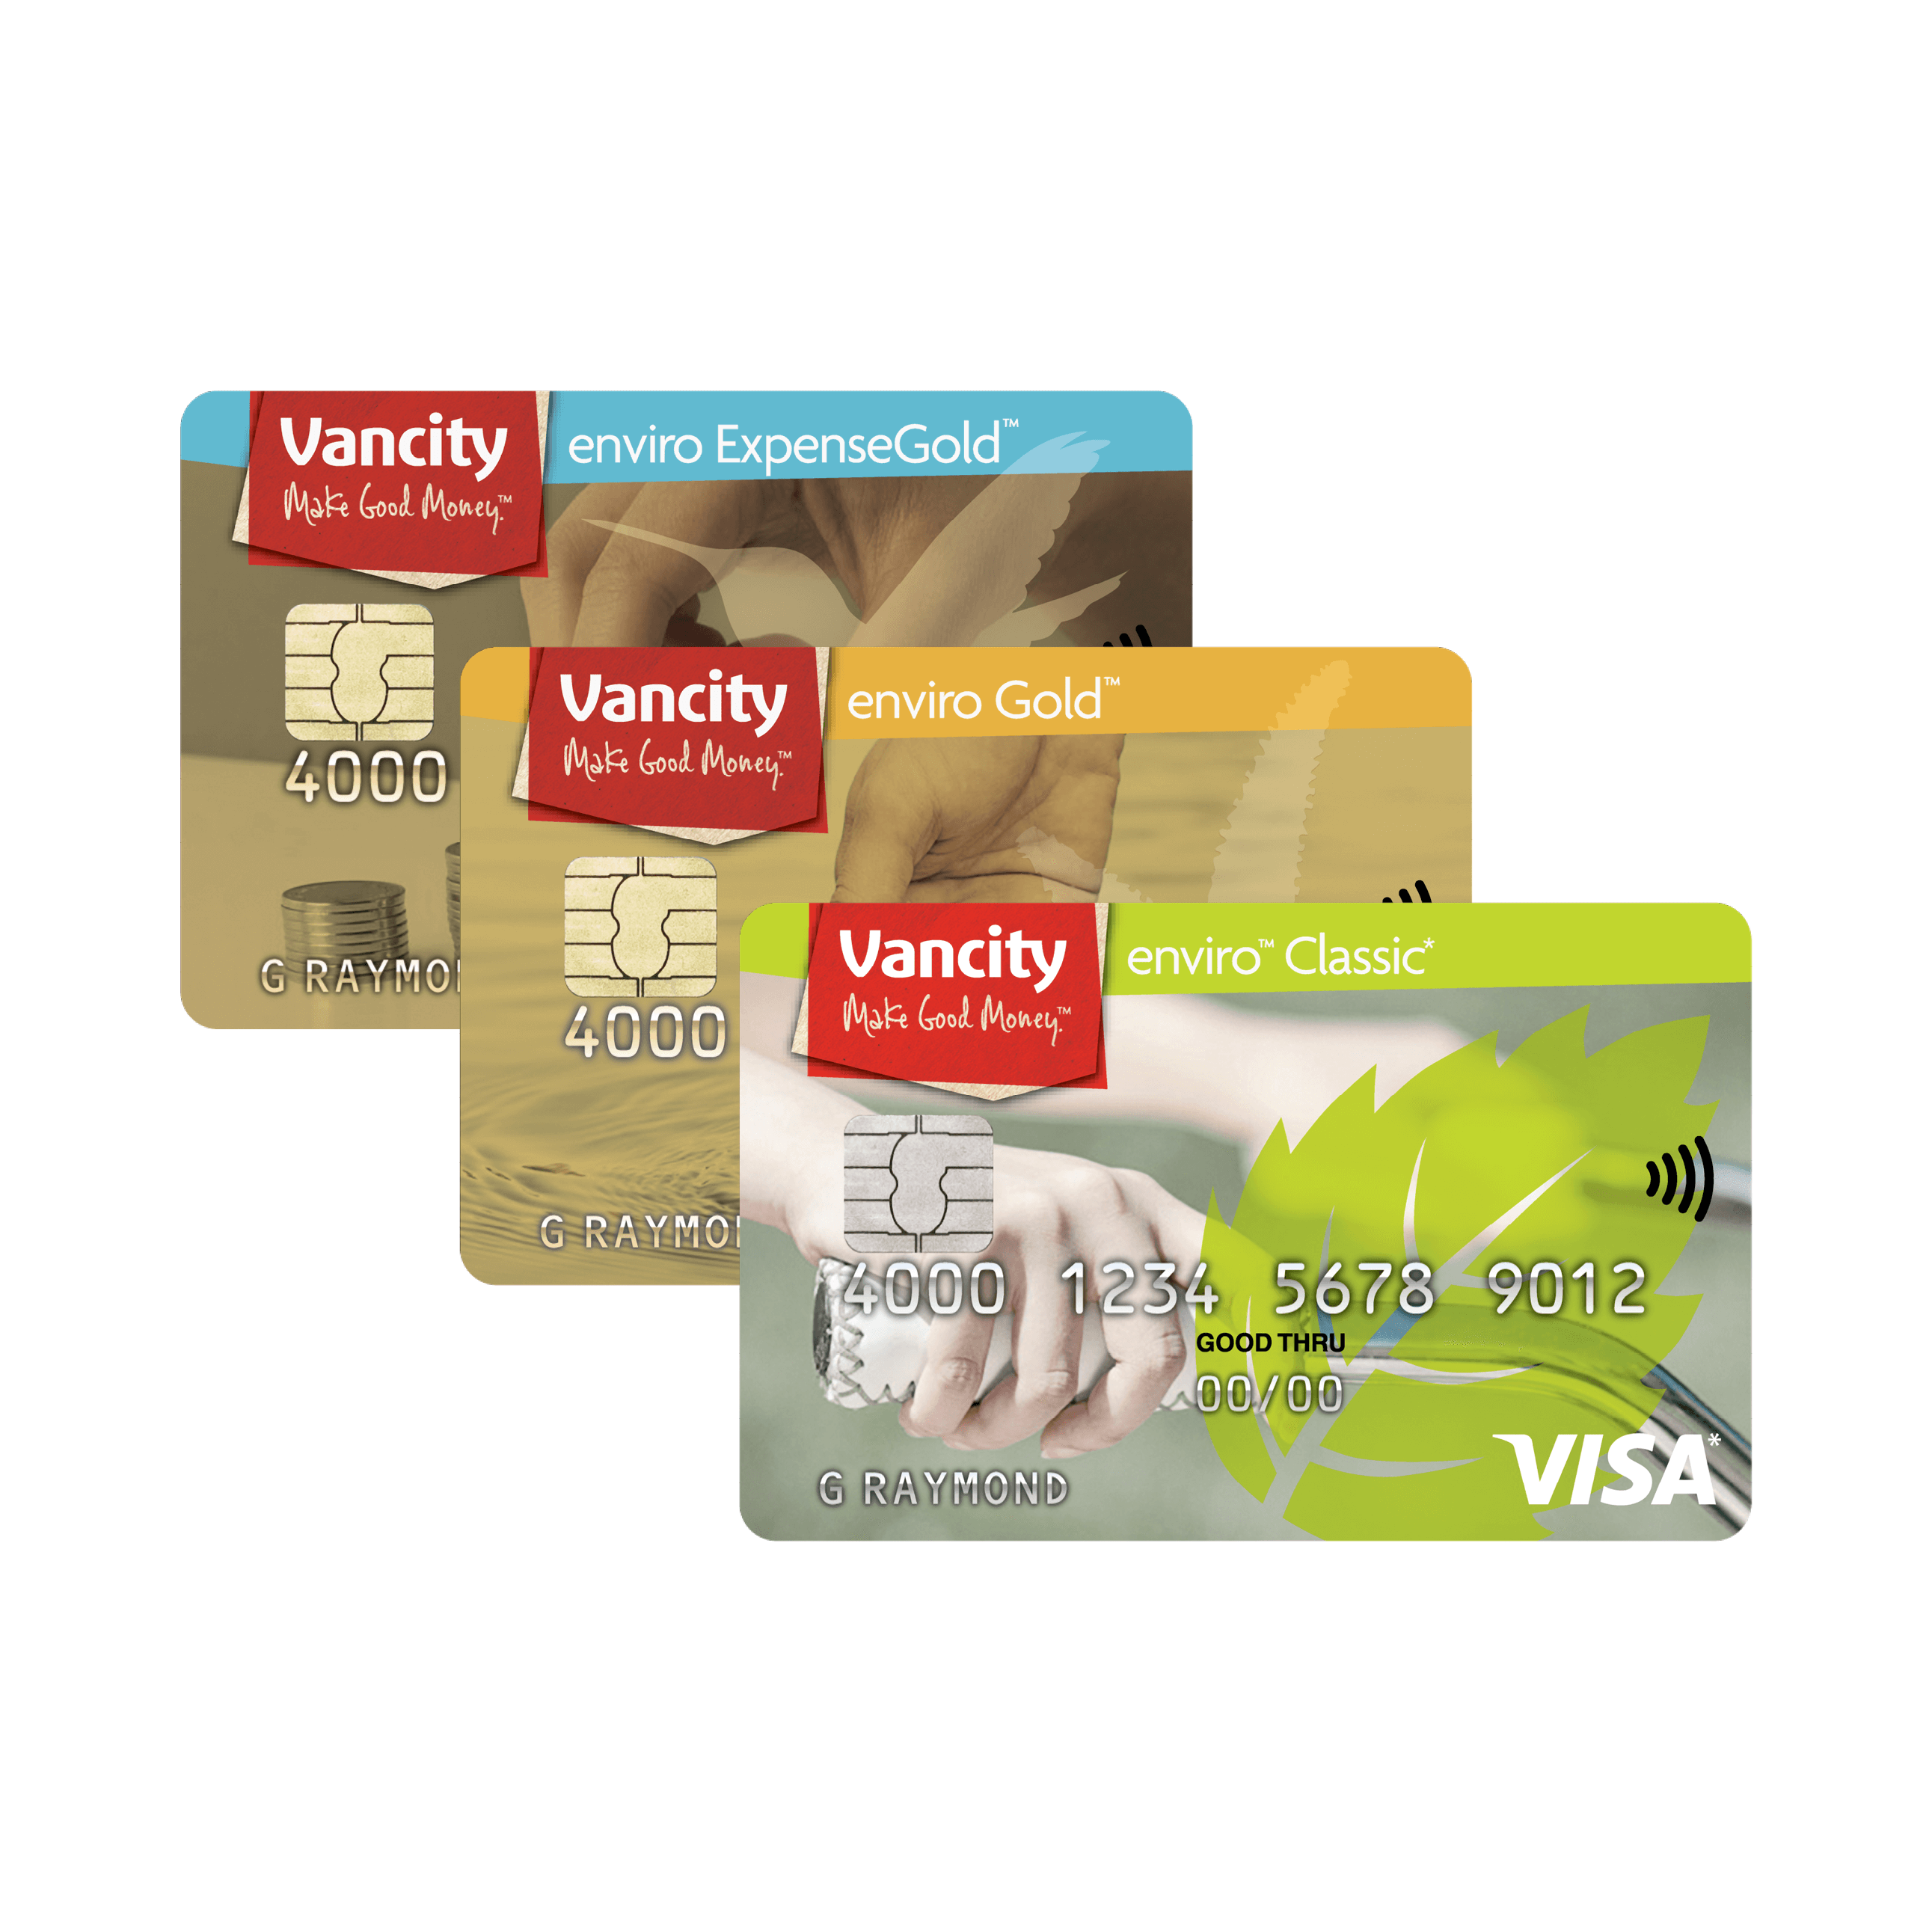 How do I access my Visa card information through the Manage my Visa